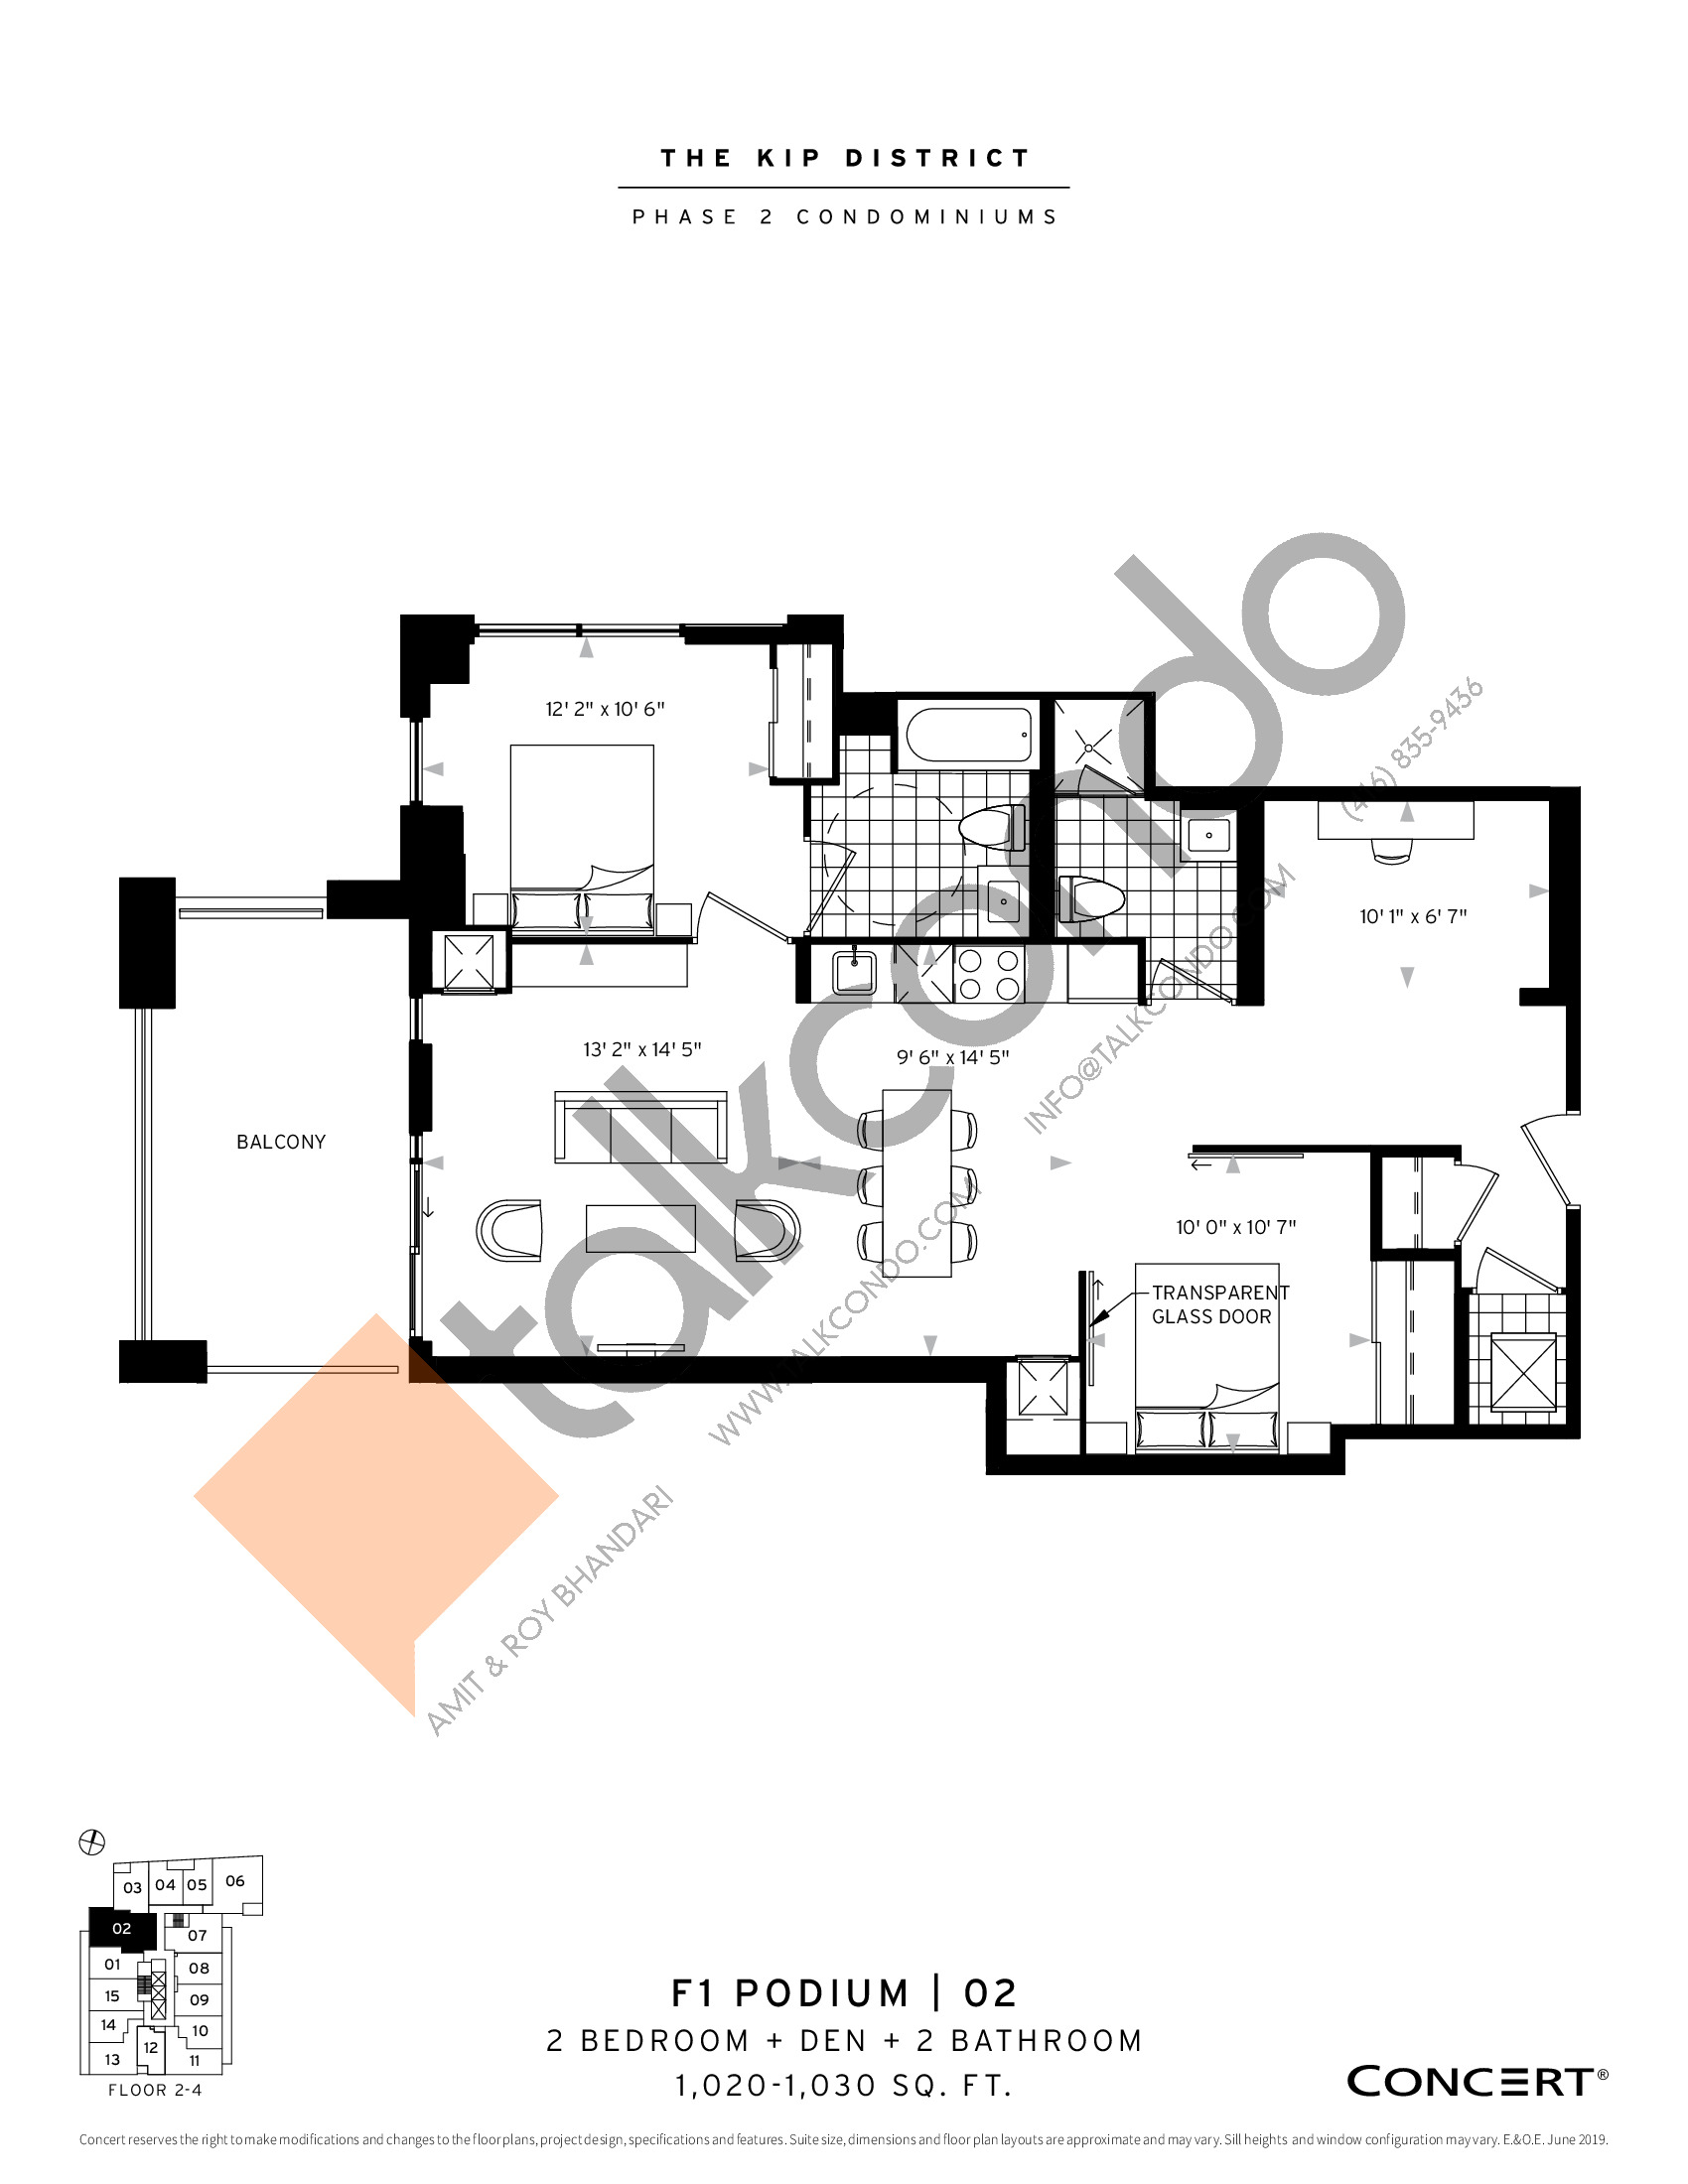 F1 Podium | 02 Floor Plan at The Kip District Phase 2 Condos - 1020 sq.ft